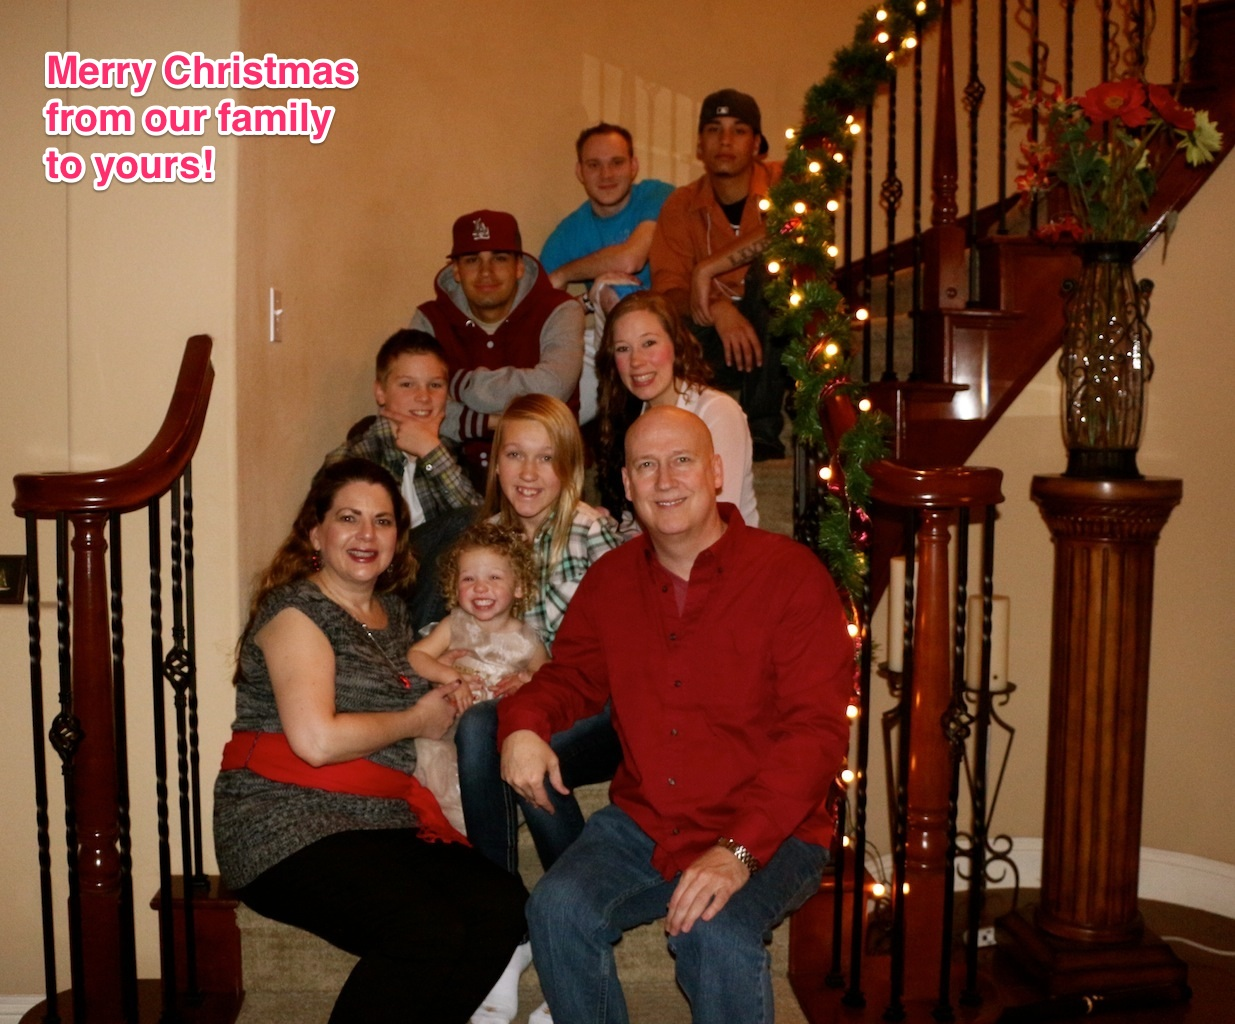 Merry Christmas from Randy Elliott & Family